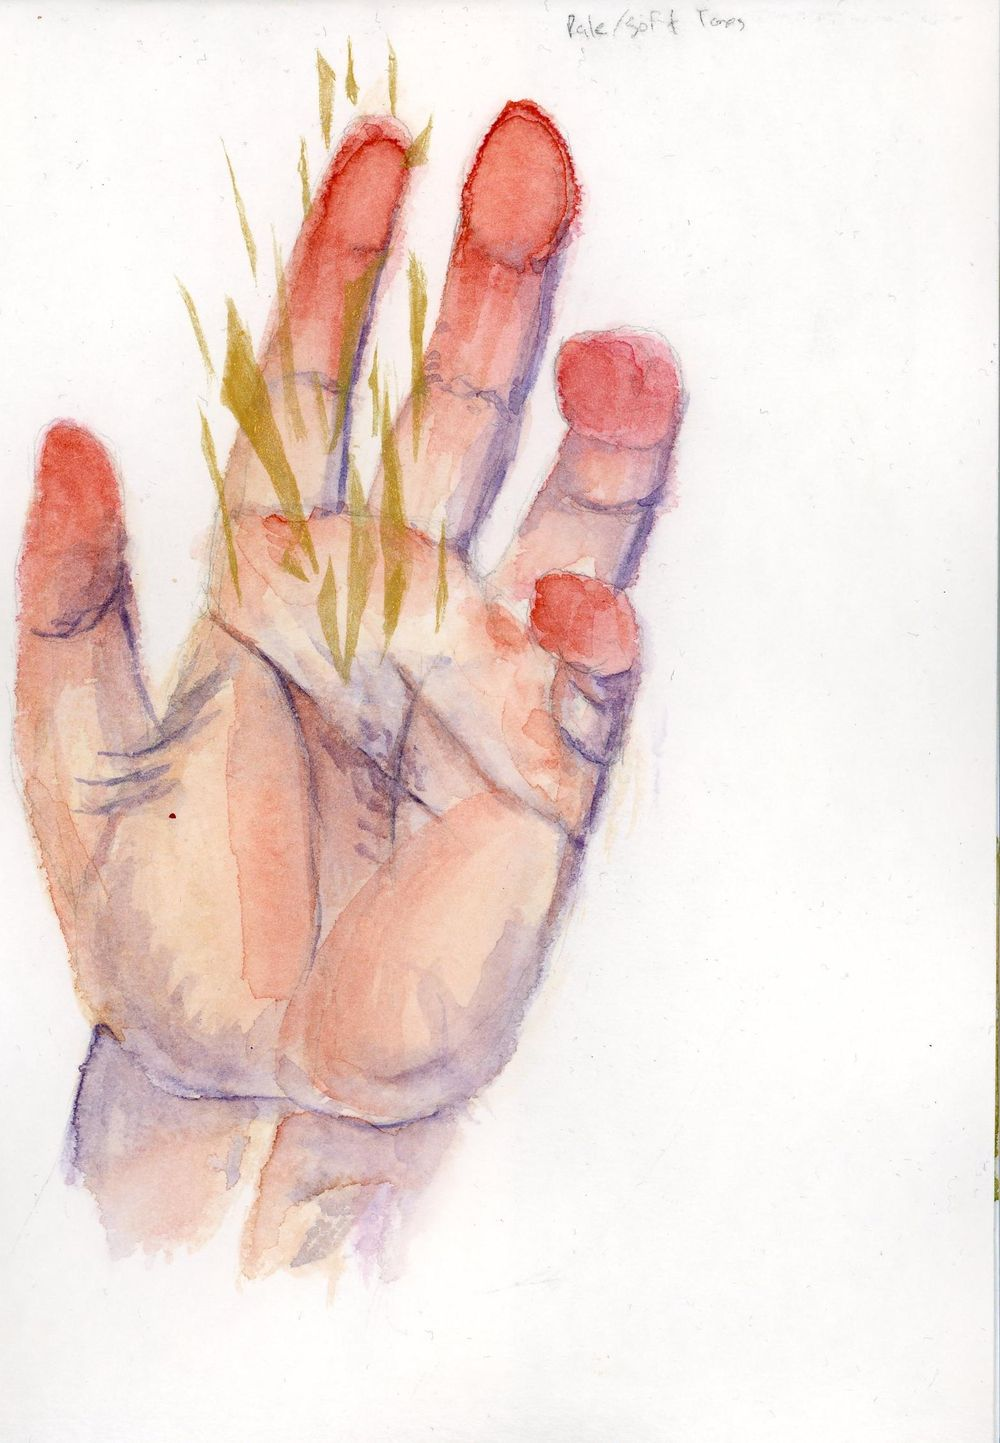 My Hands - image 3 - student project